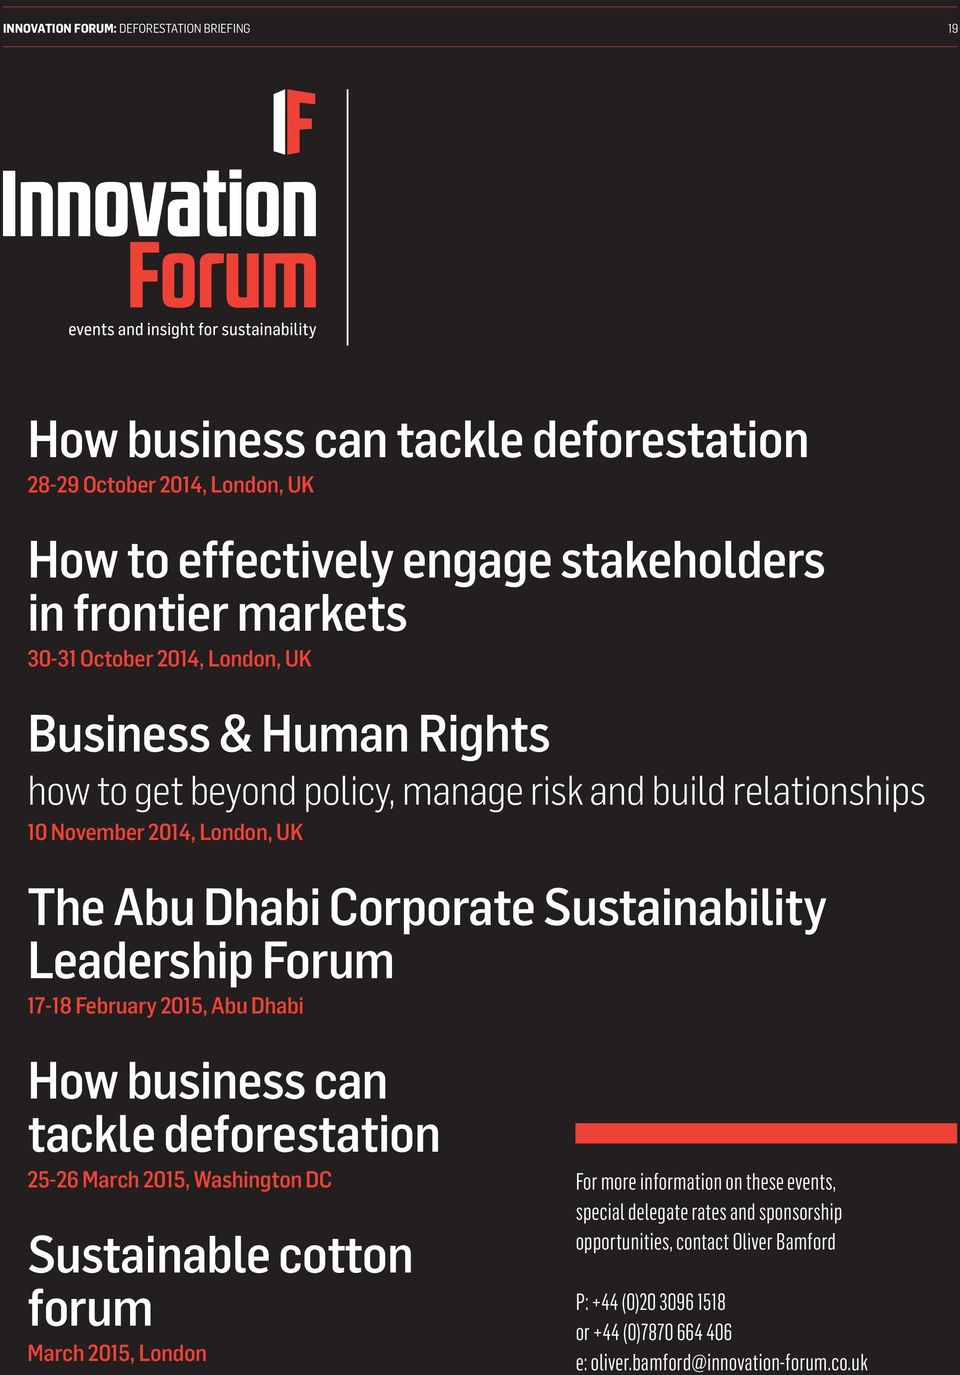 Sustainability Leadership Forum 17-18 February 2015, Abu Dhabi How business can tackle deforestation 25-26 March 2015, Washington DC Sustainable cotton forum March 2015, London For